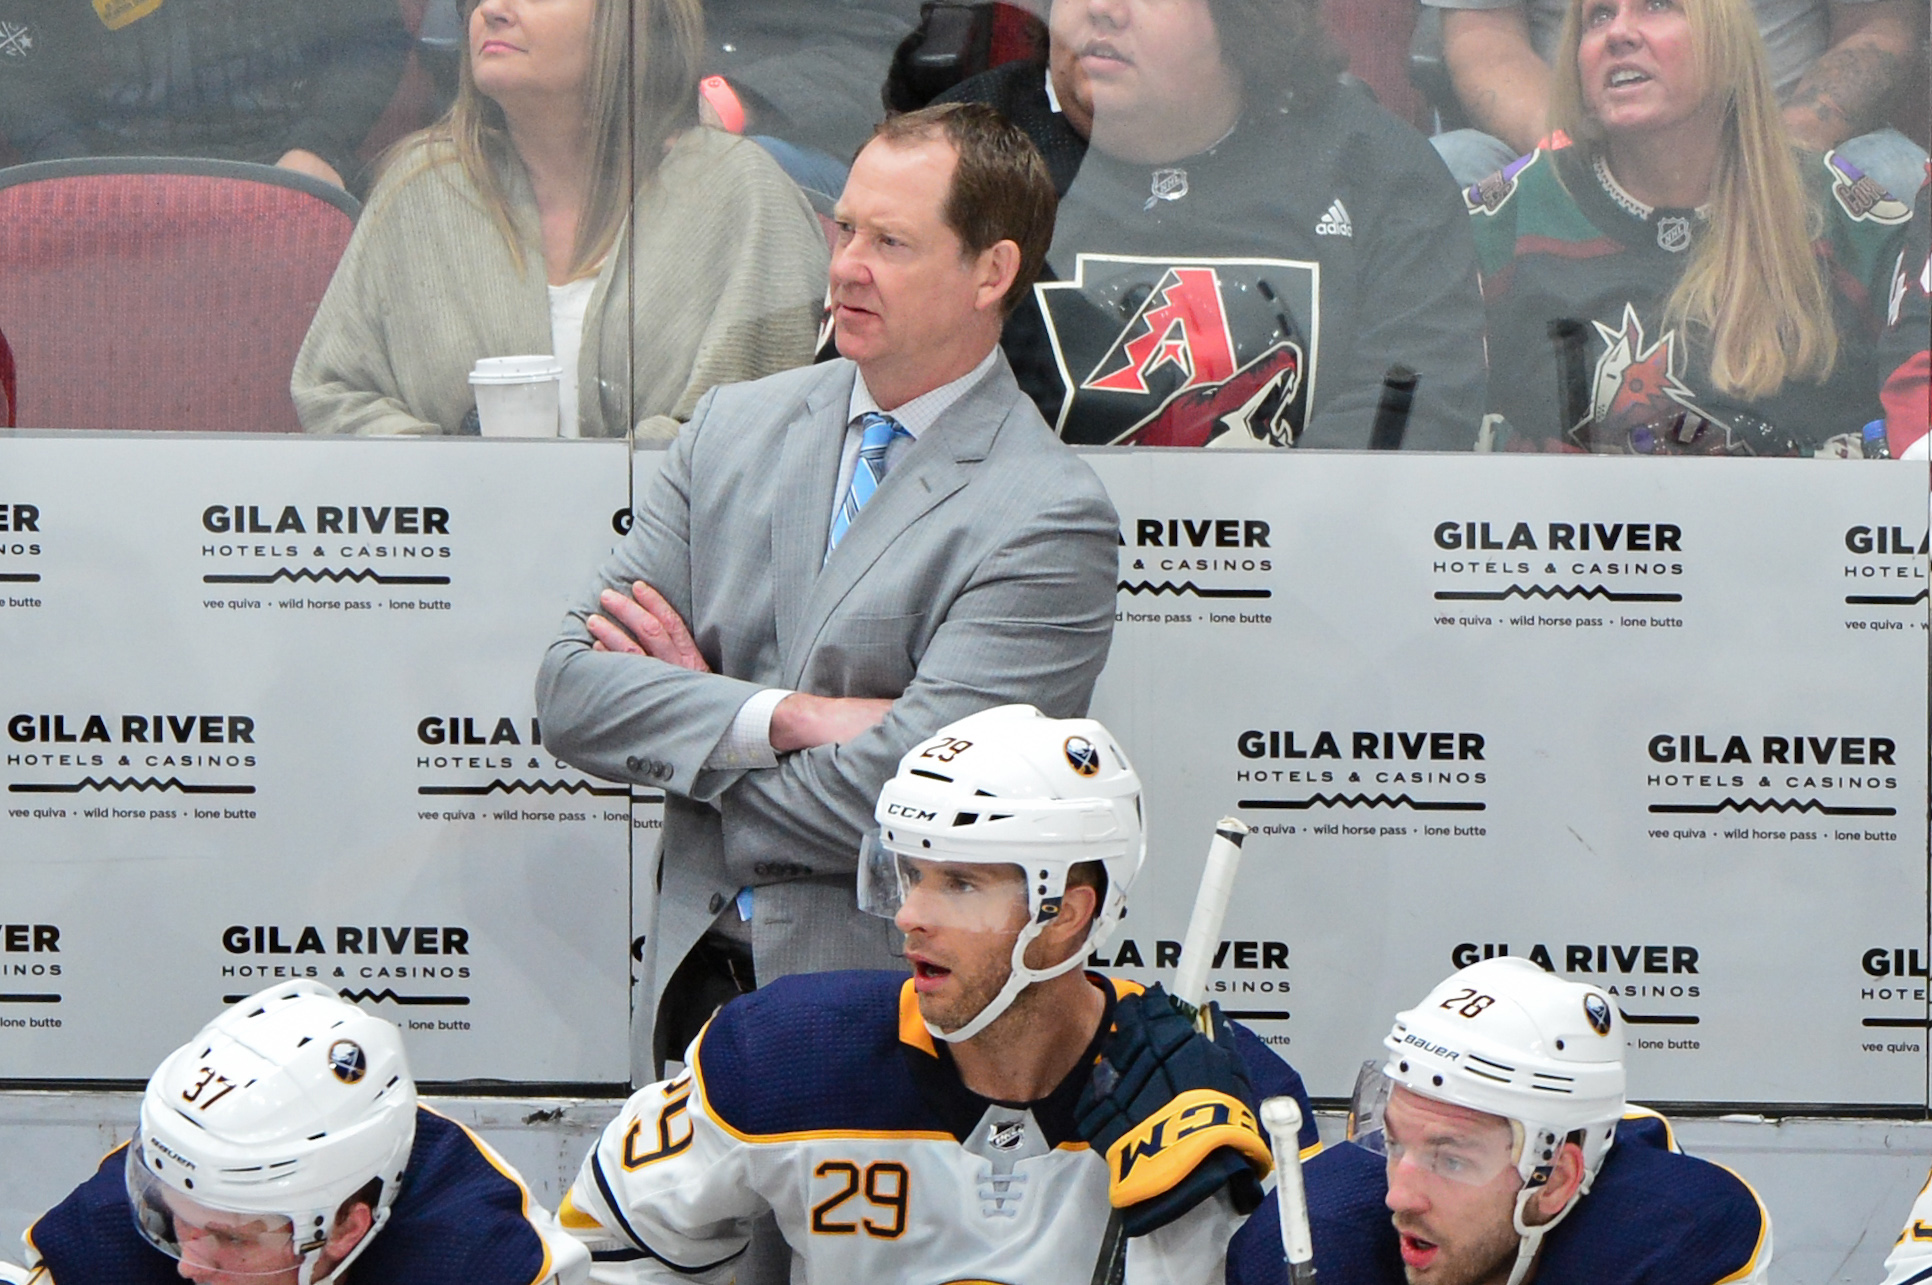 Phil Housley An Early Favorite For The Jack Adams Award